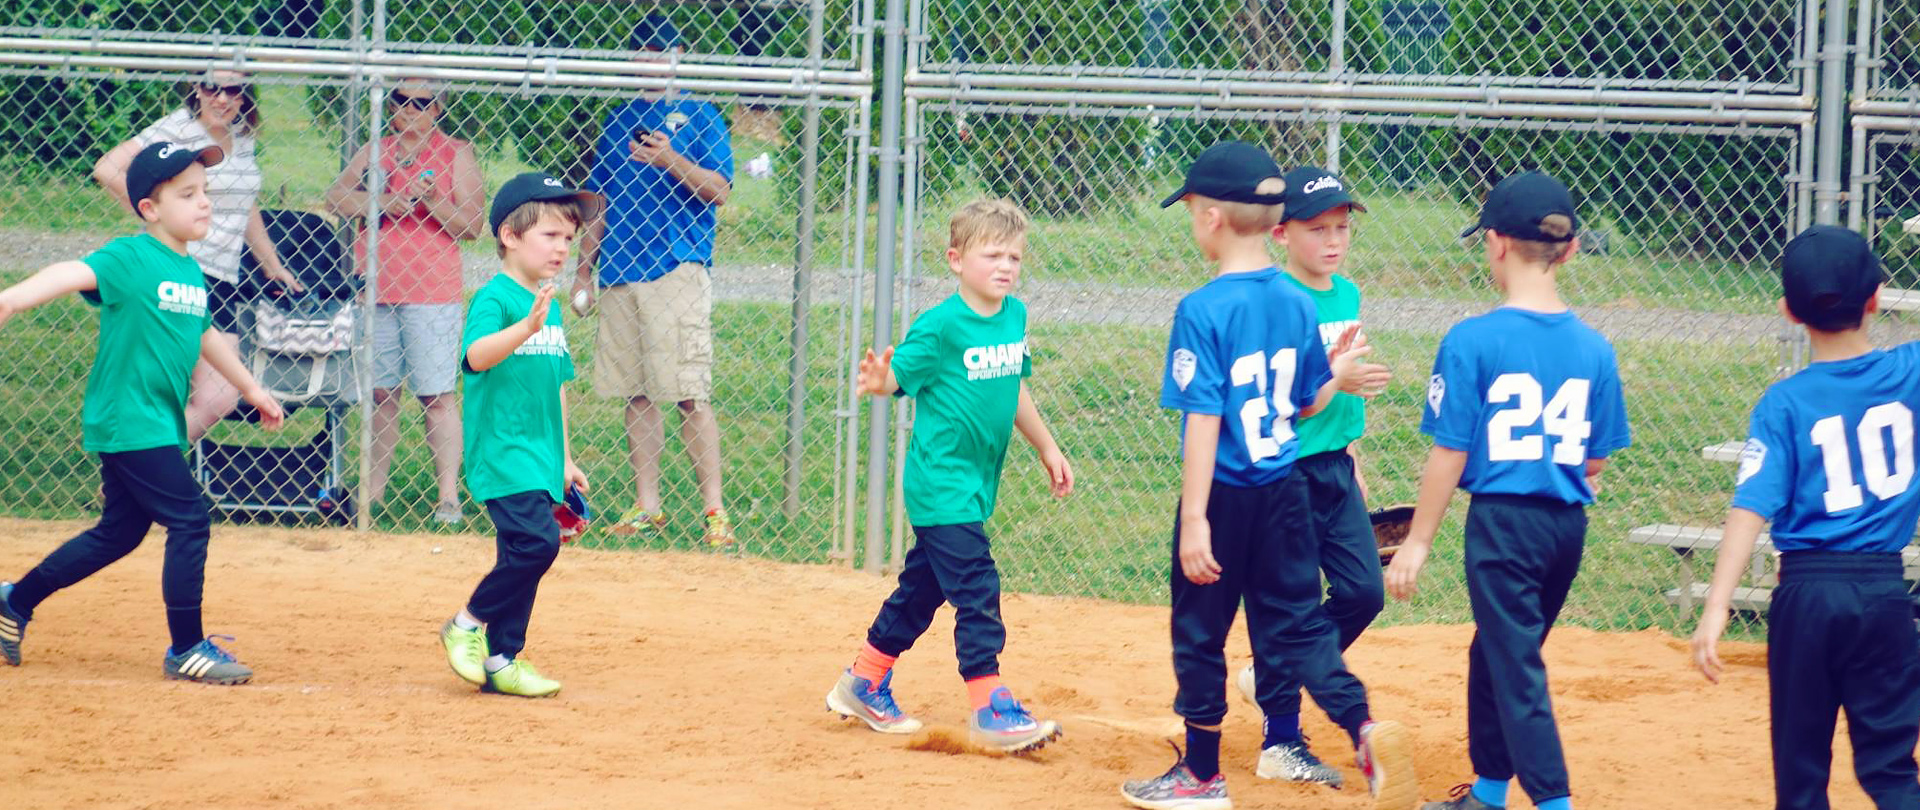 CHAMP T-Ball